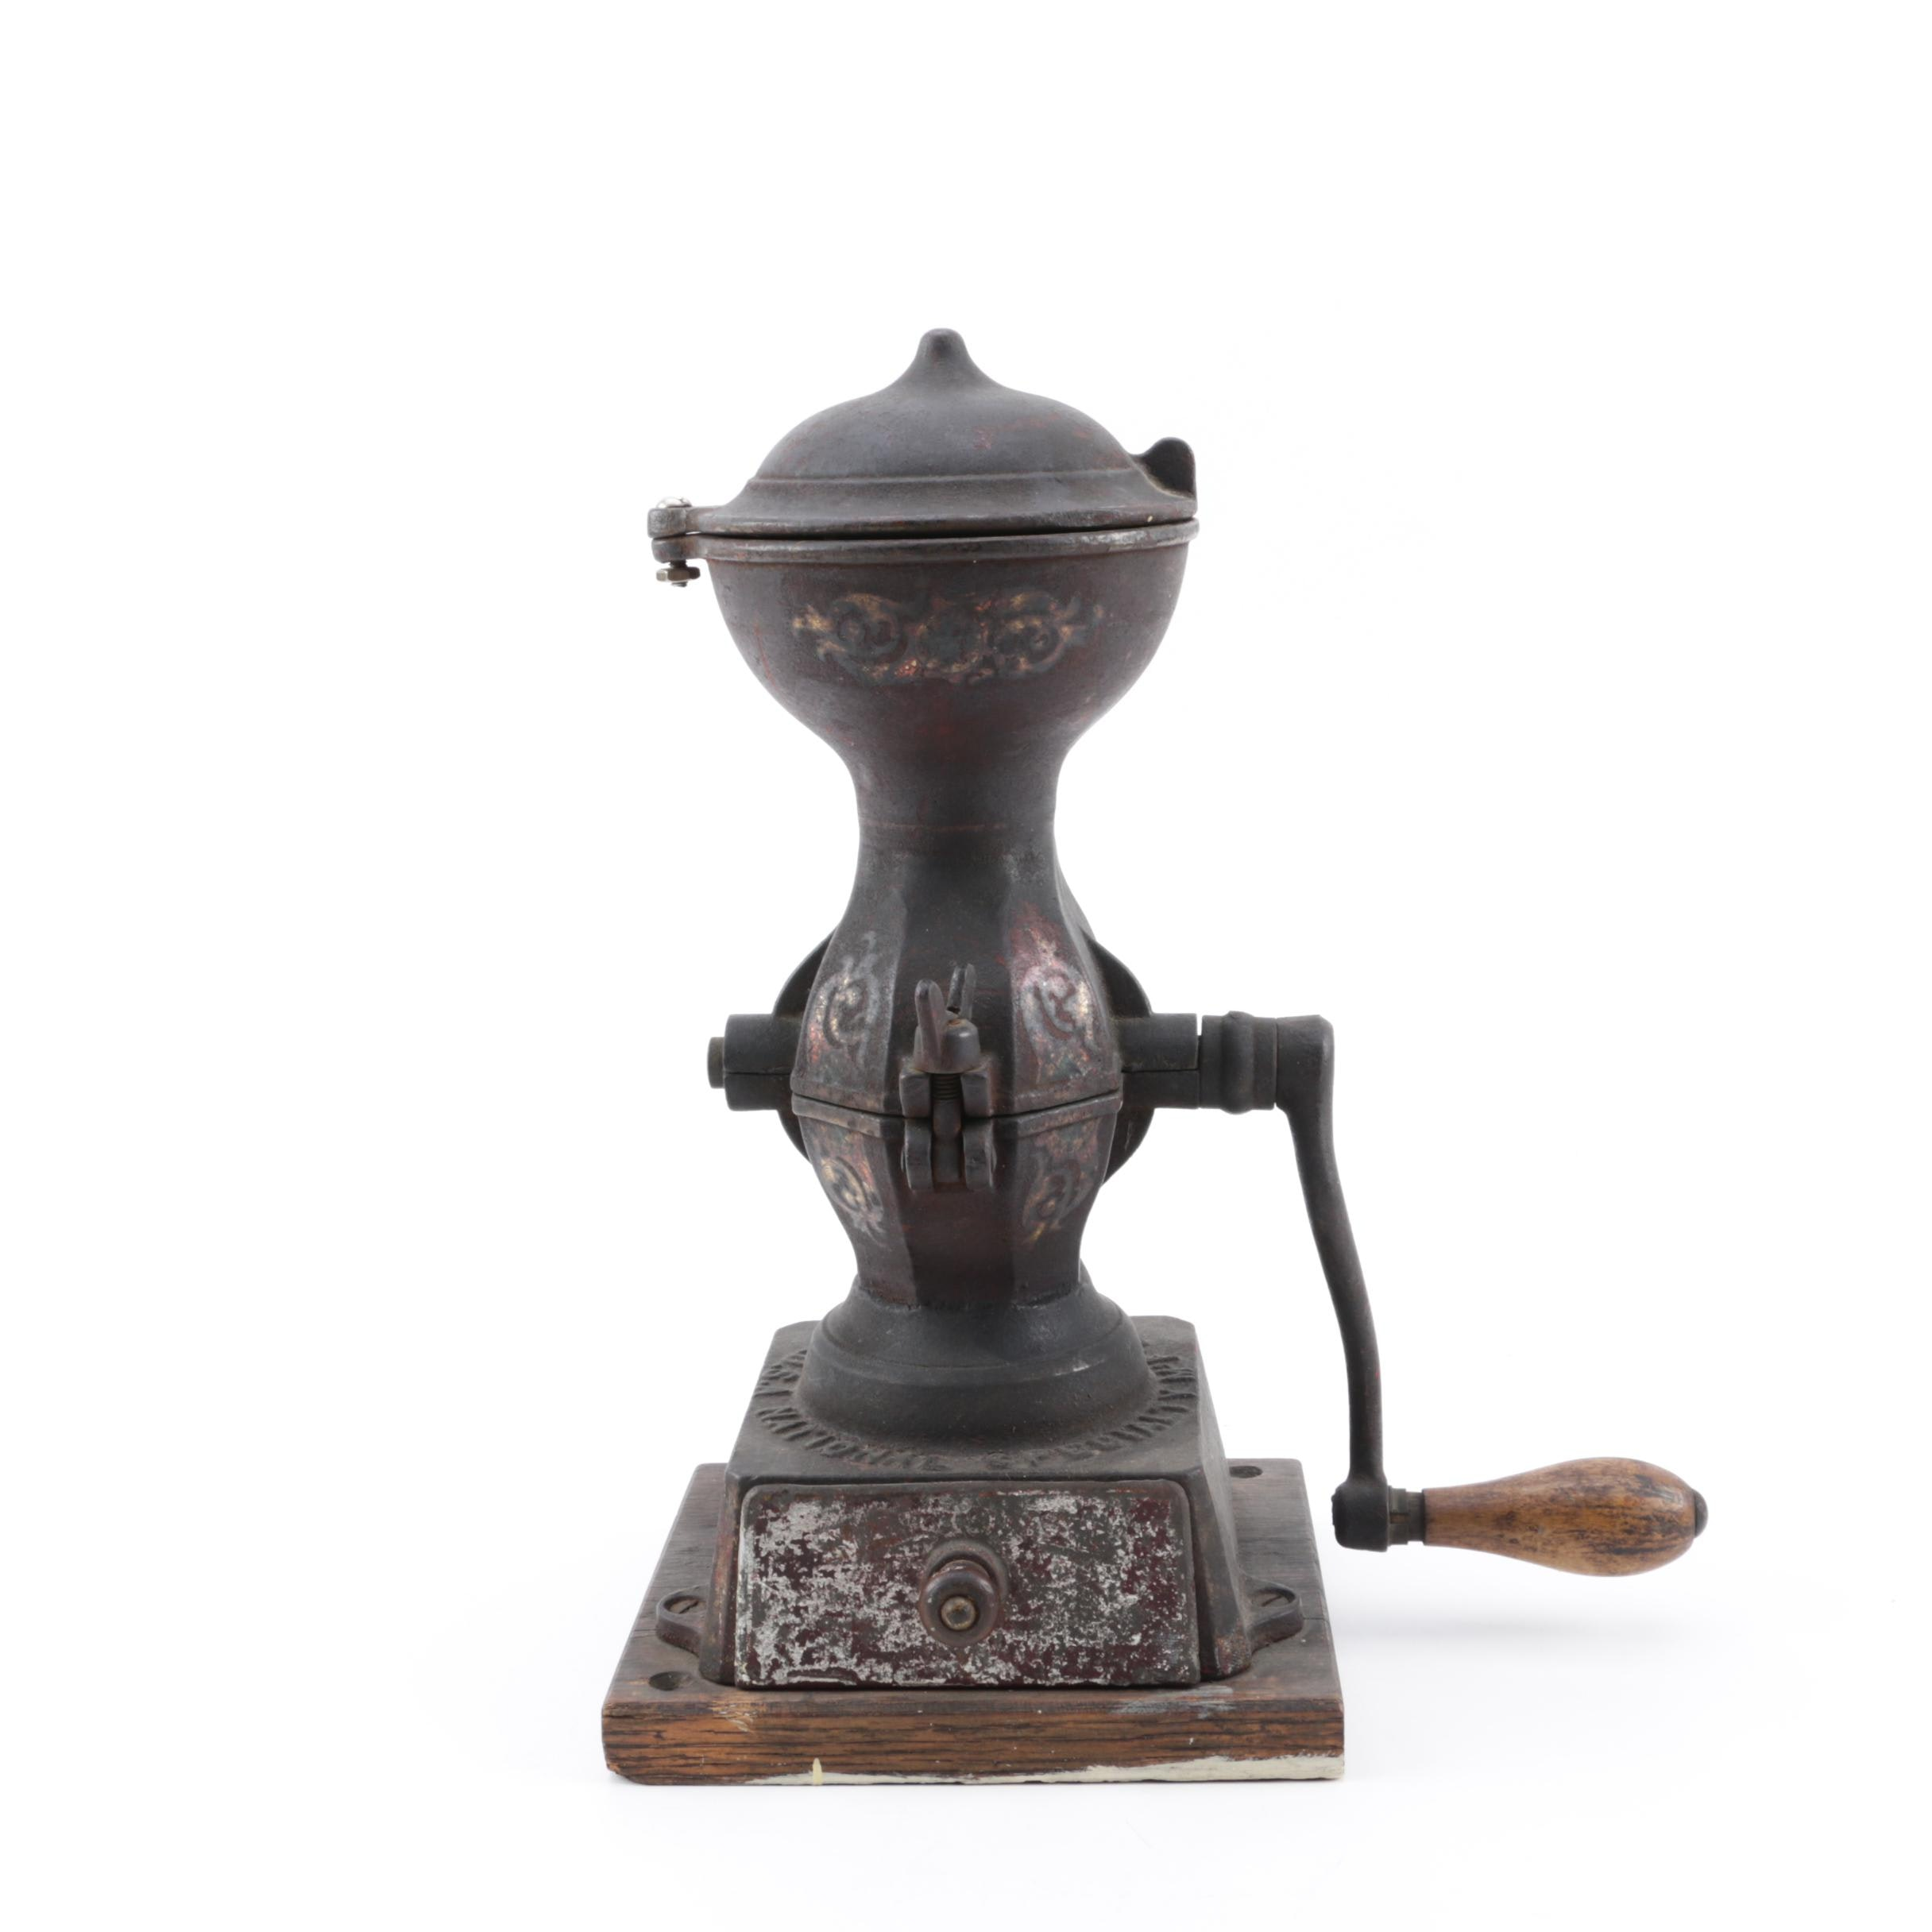 Antique National Specialty Mfg. Co. Cast Iron Coffee Grinder